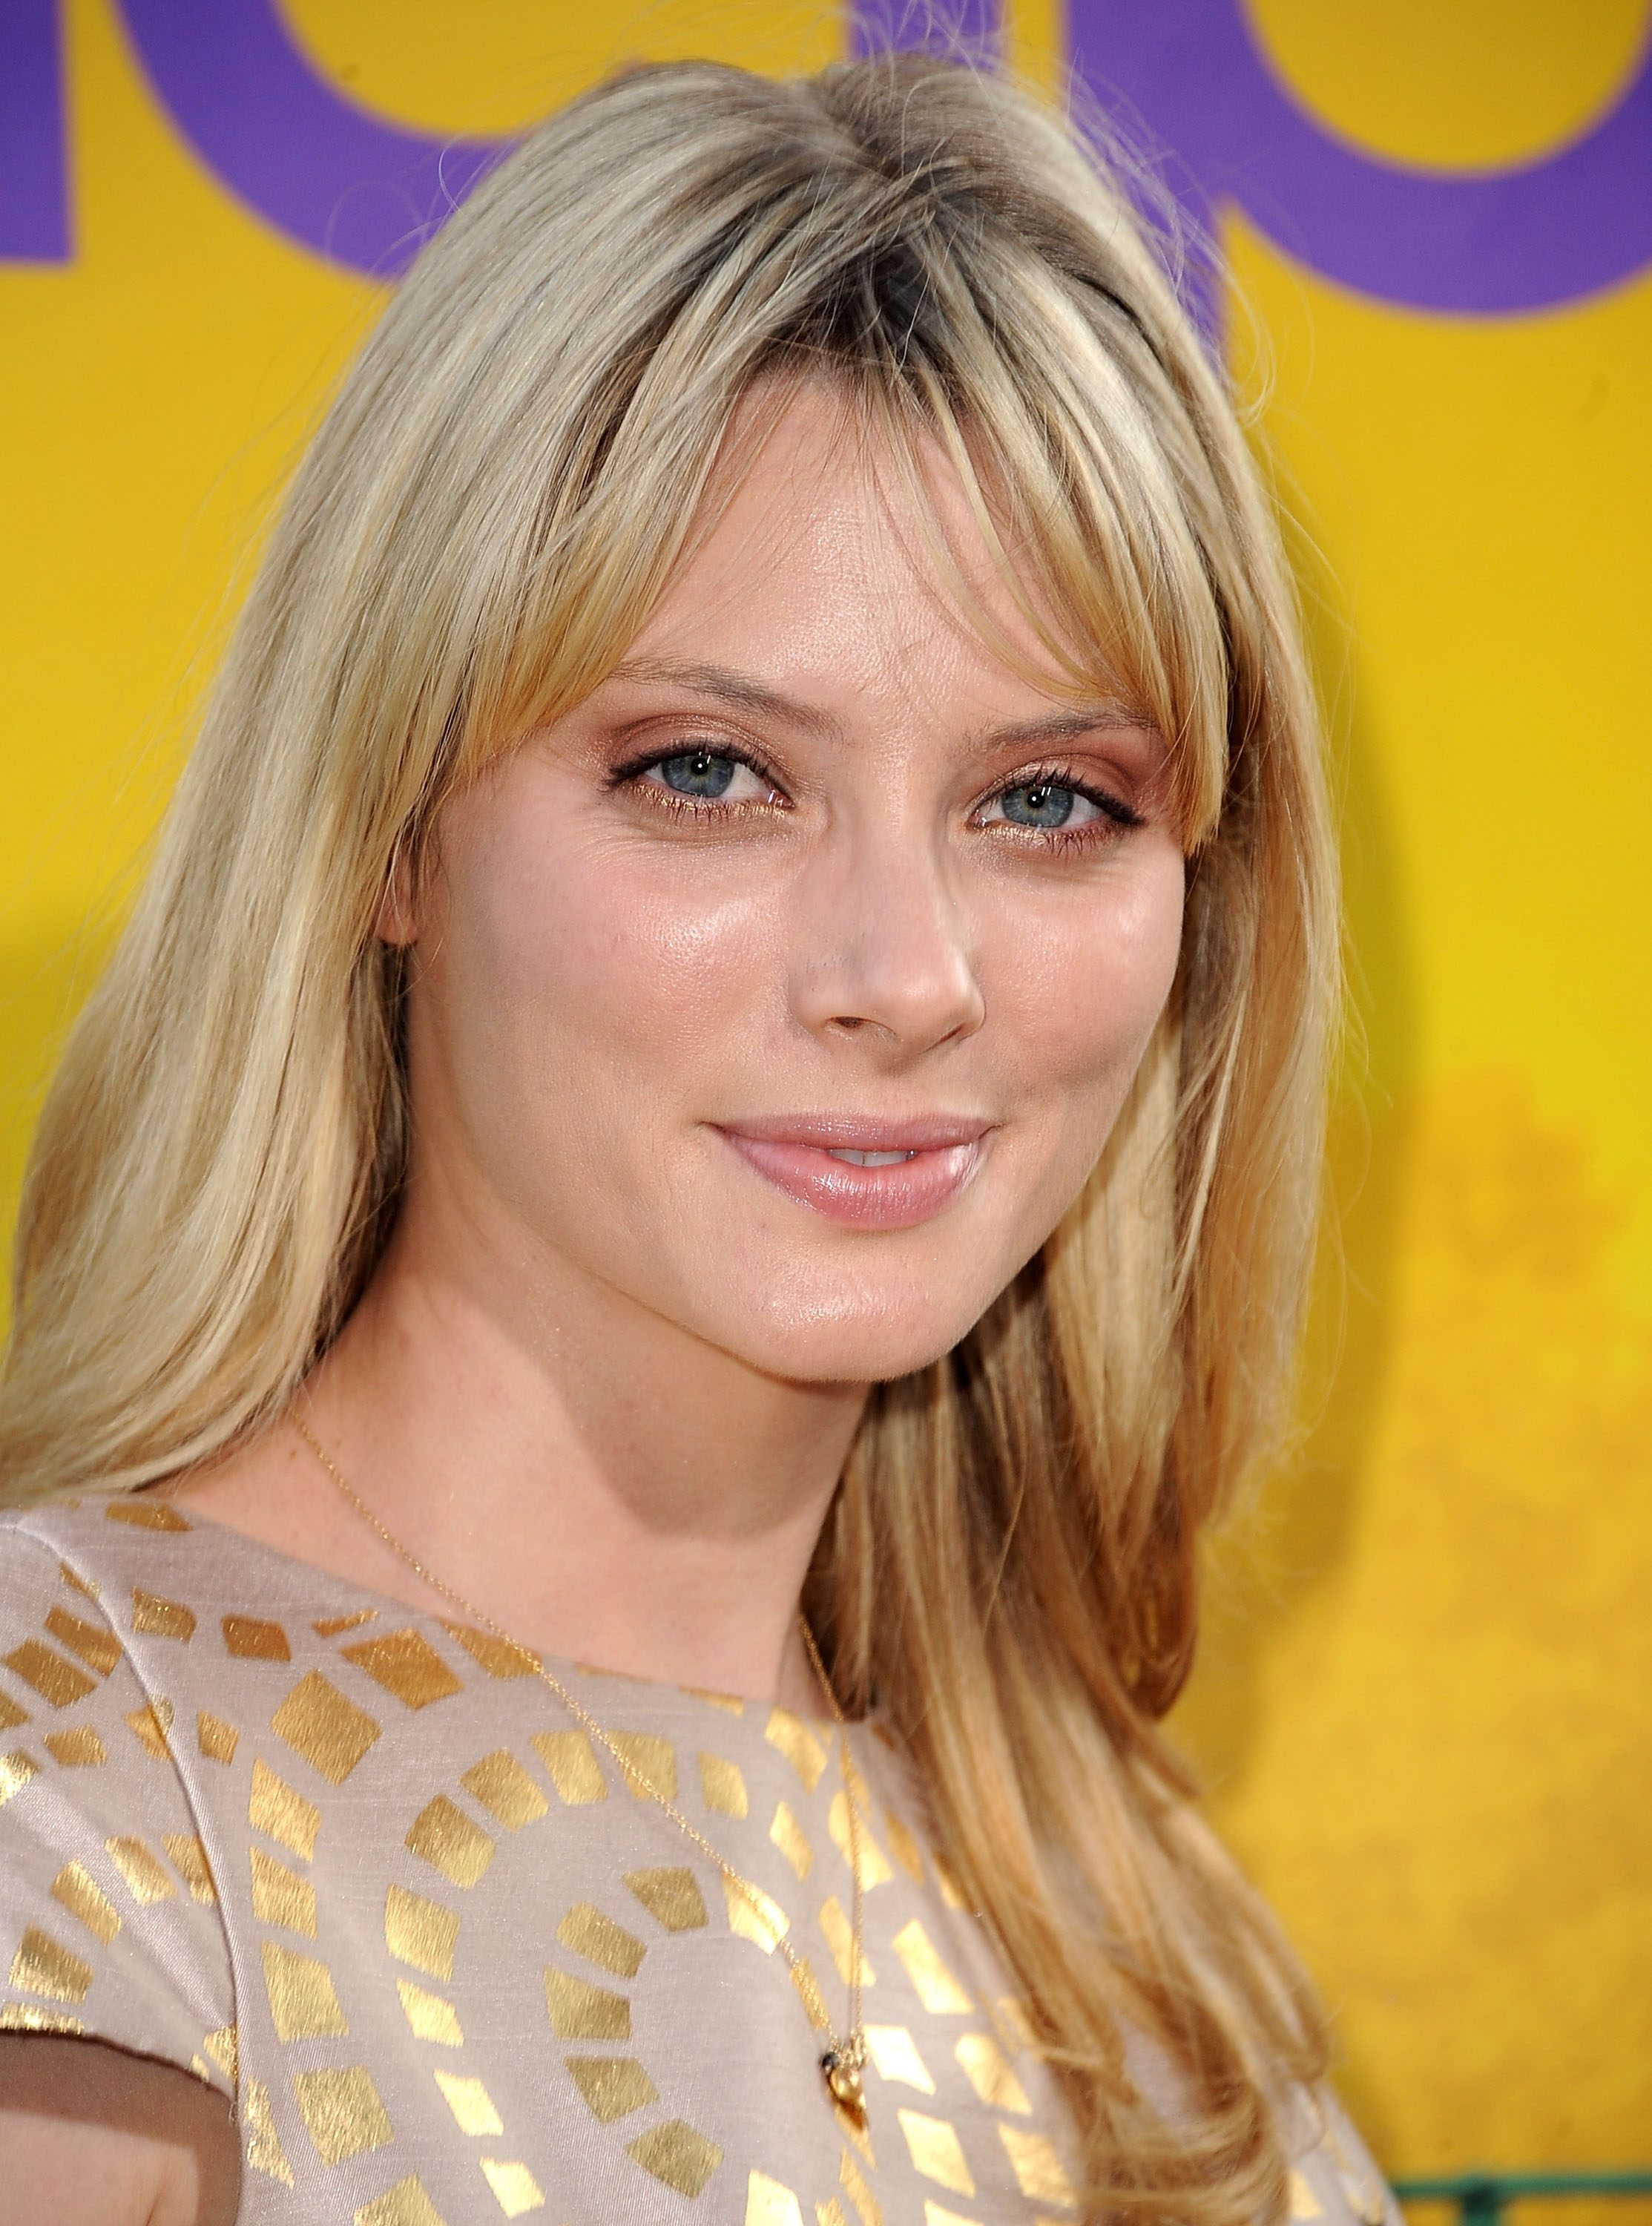 april bowlby dating 2013 Alex constancio and austin mahone began posting youtube videos in june 2010 austin mahone appeared one of the opening acts for taylor swift's 2013 red tour britney spears bio | net worth, height, weight, boyfriend, dating, affair daddario dating lilly singh husband april bowlby dating alaskan bush people.